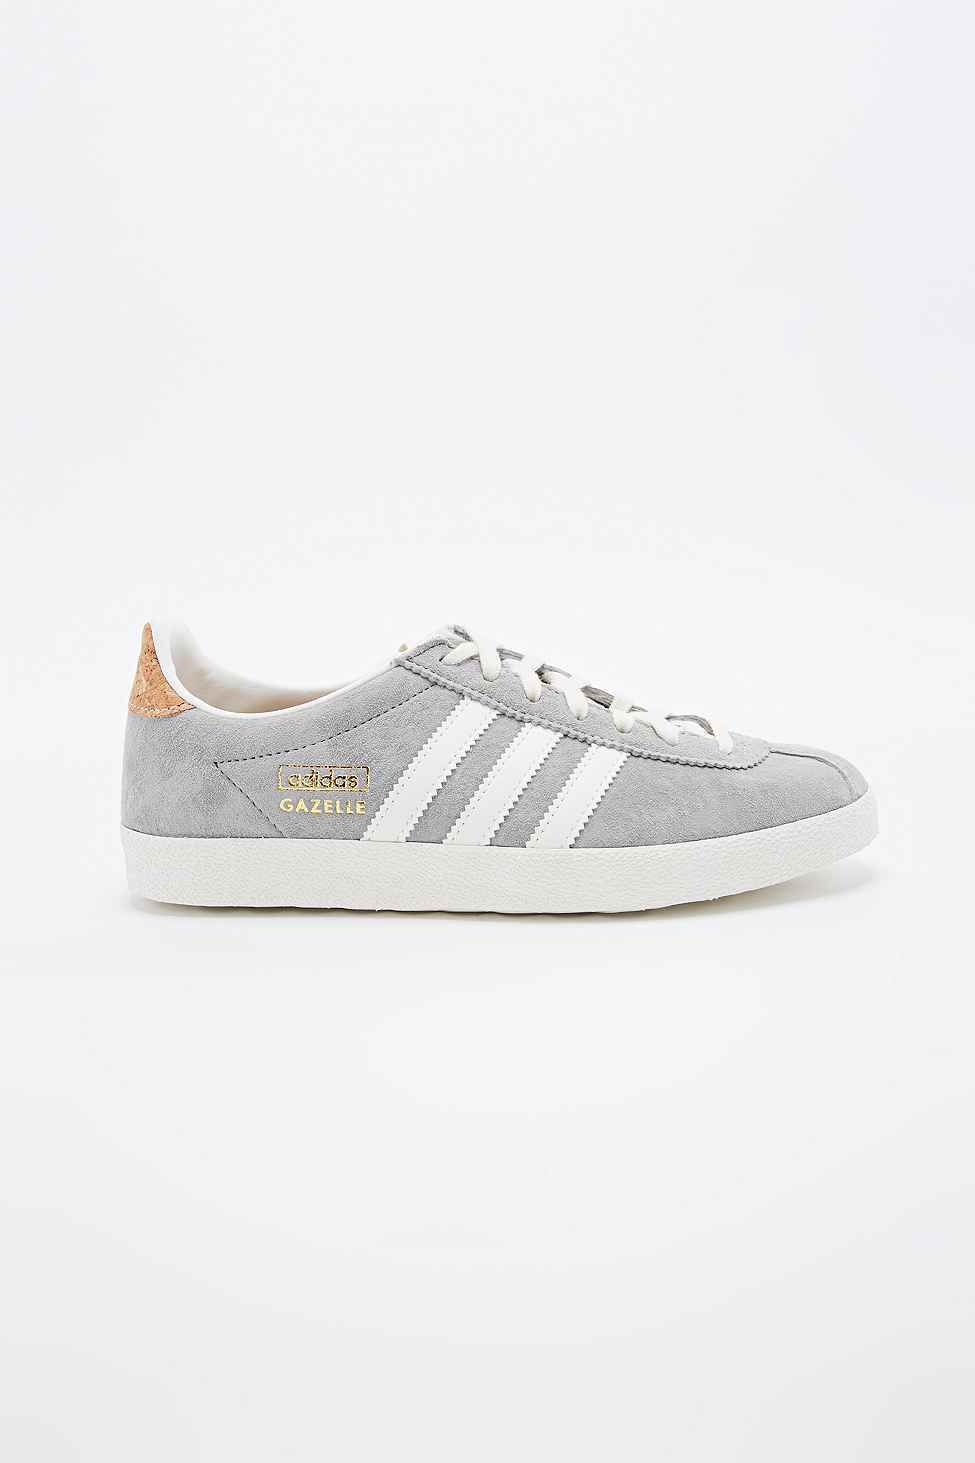 adidas Gazelle Suede Trainers in Grey  c0025717b0